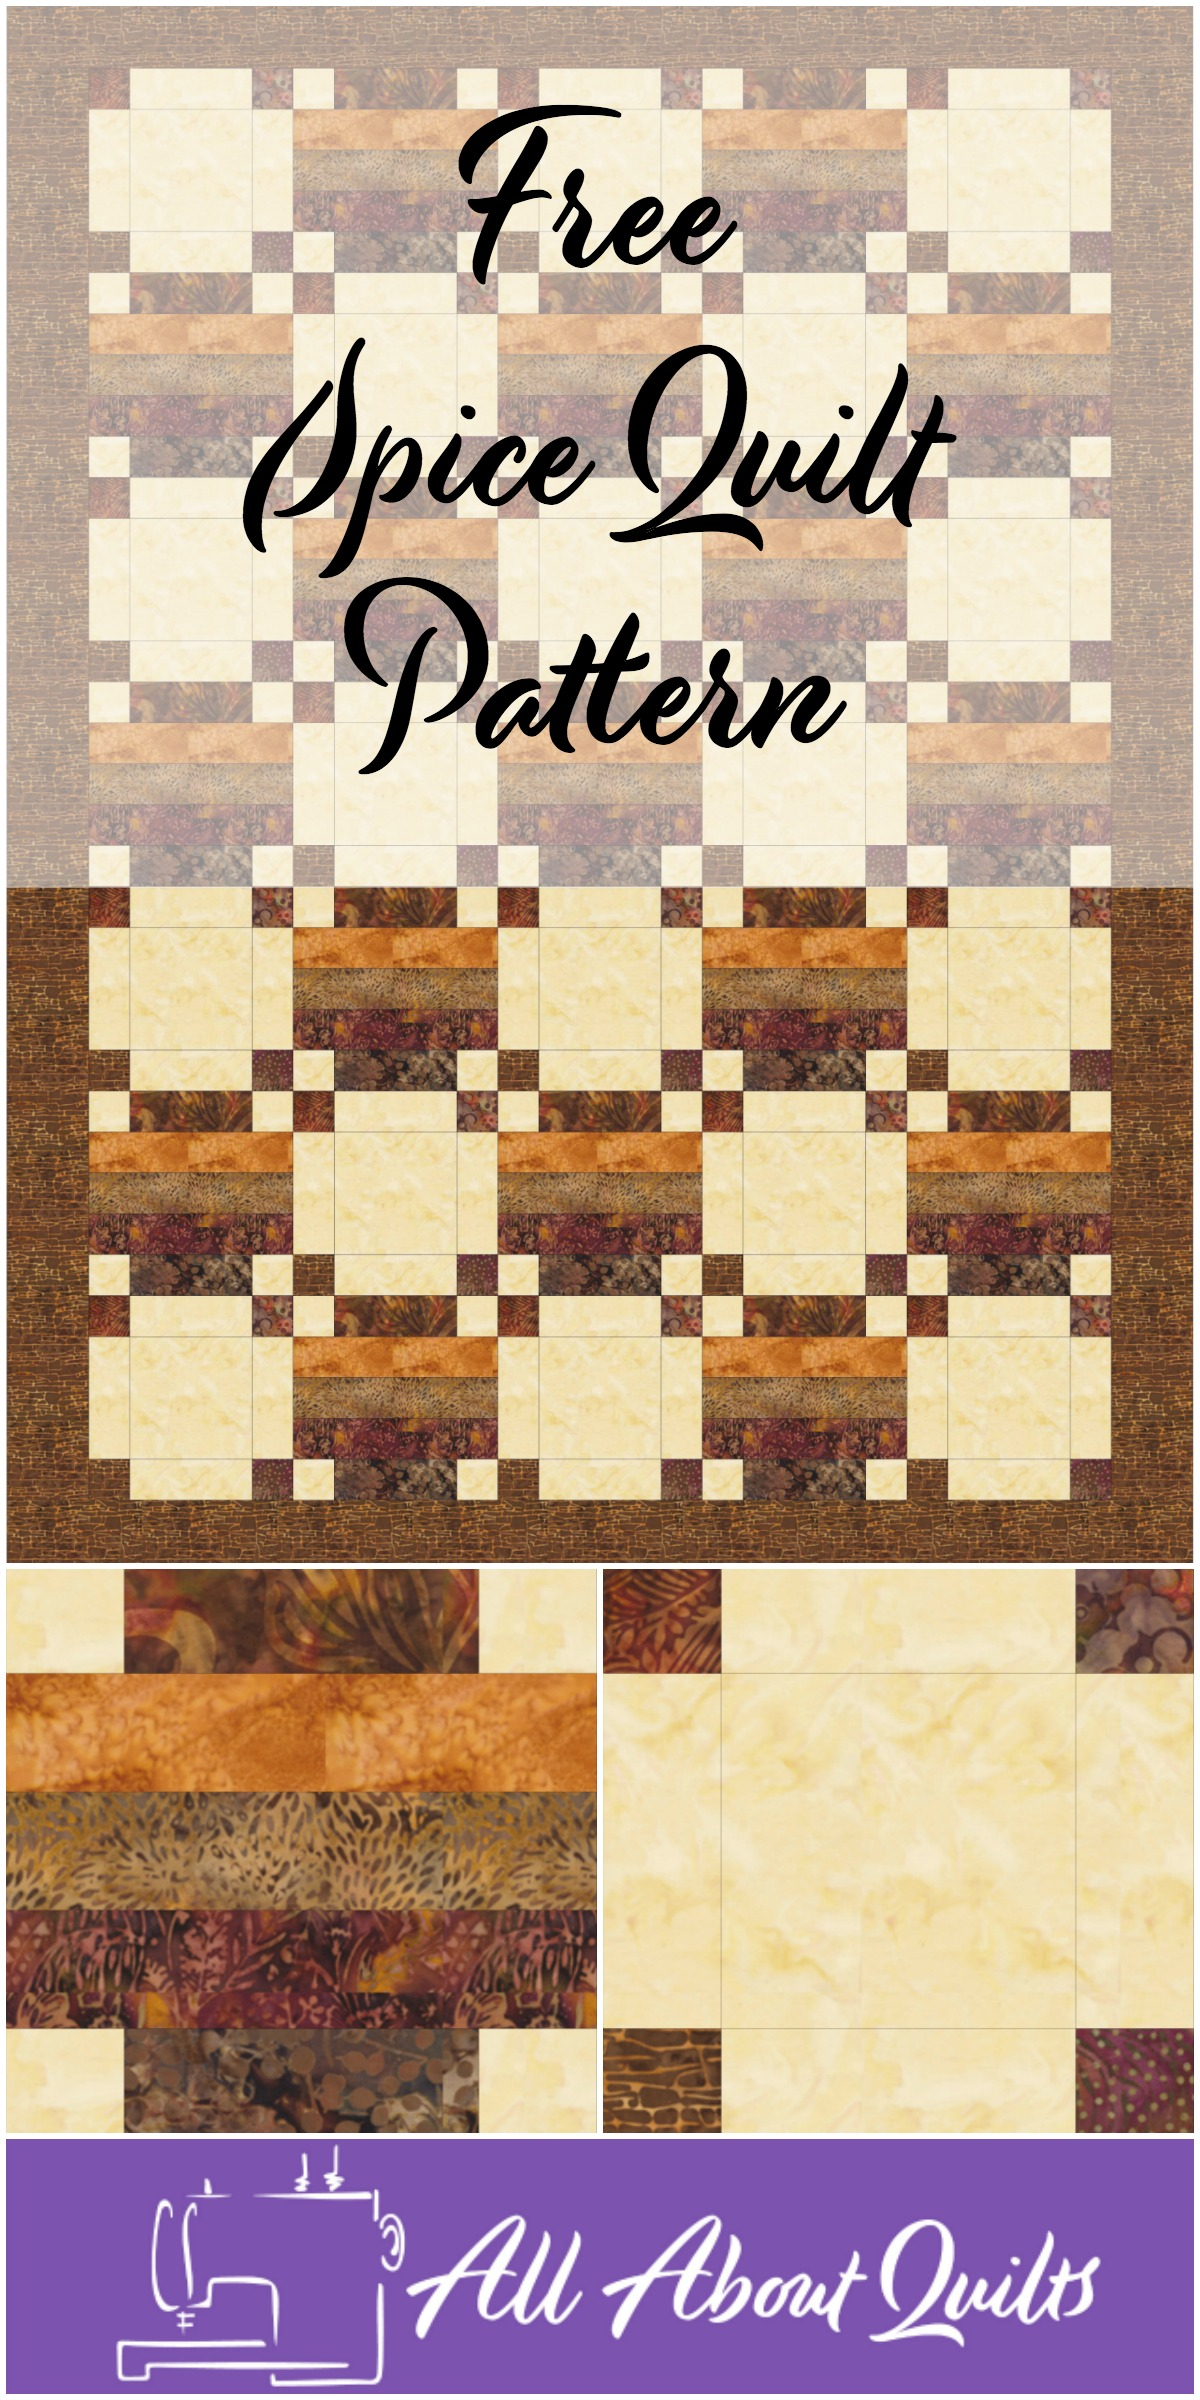 Free Spice quilt pattern